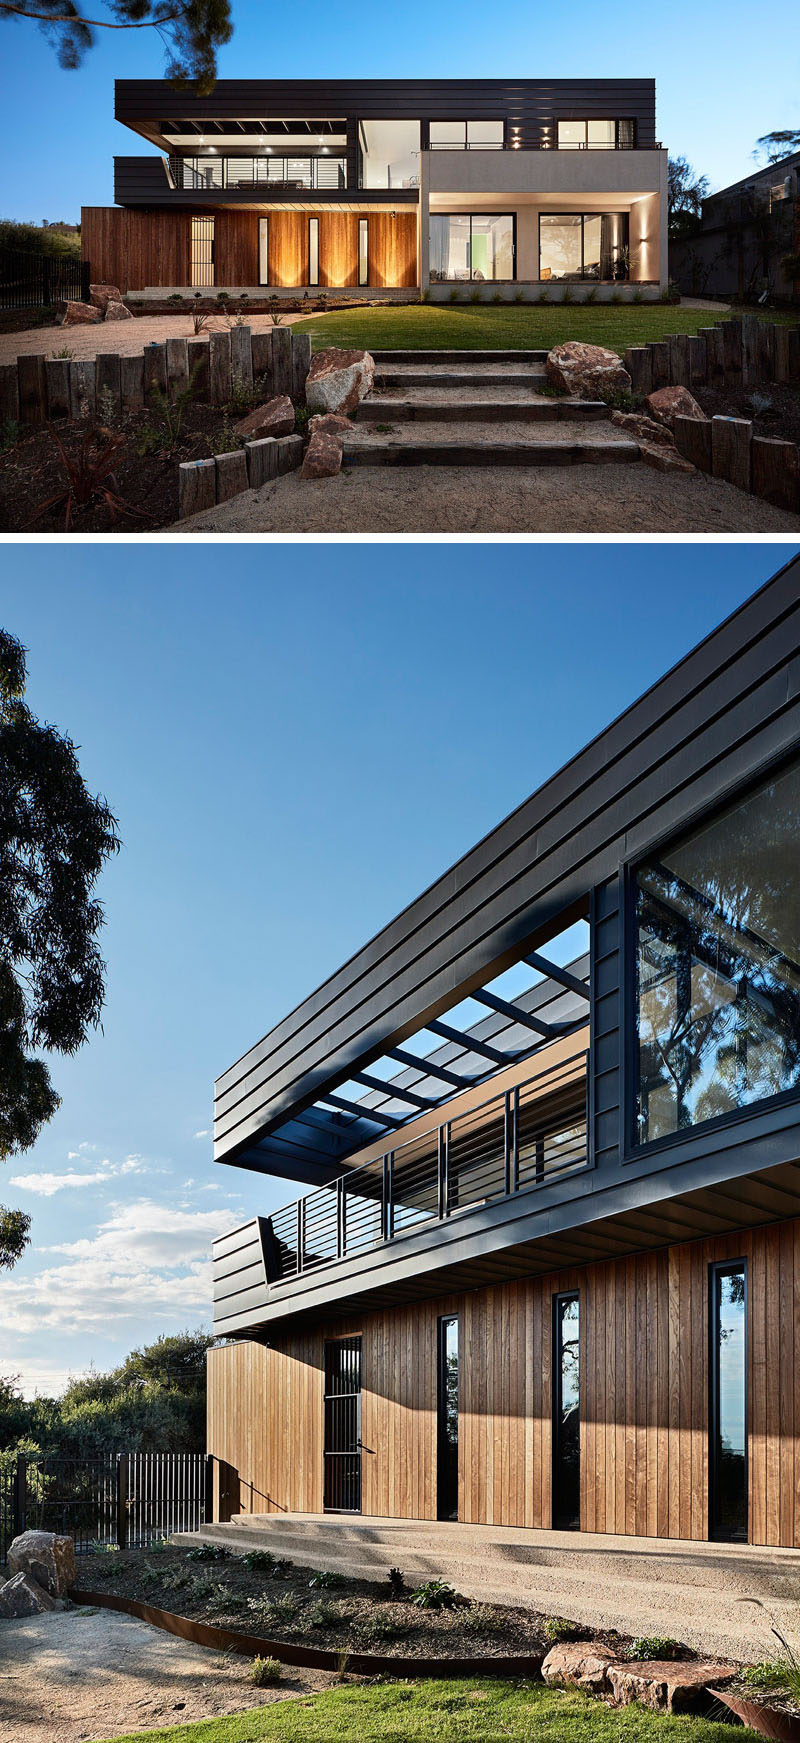 This contemporary house by Bryant Alsop Architects, was designed for a semi-retired couple and their dog, who wanted a private haven to entertain guests, and at the same time engages with the surrounding trees and bay views.